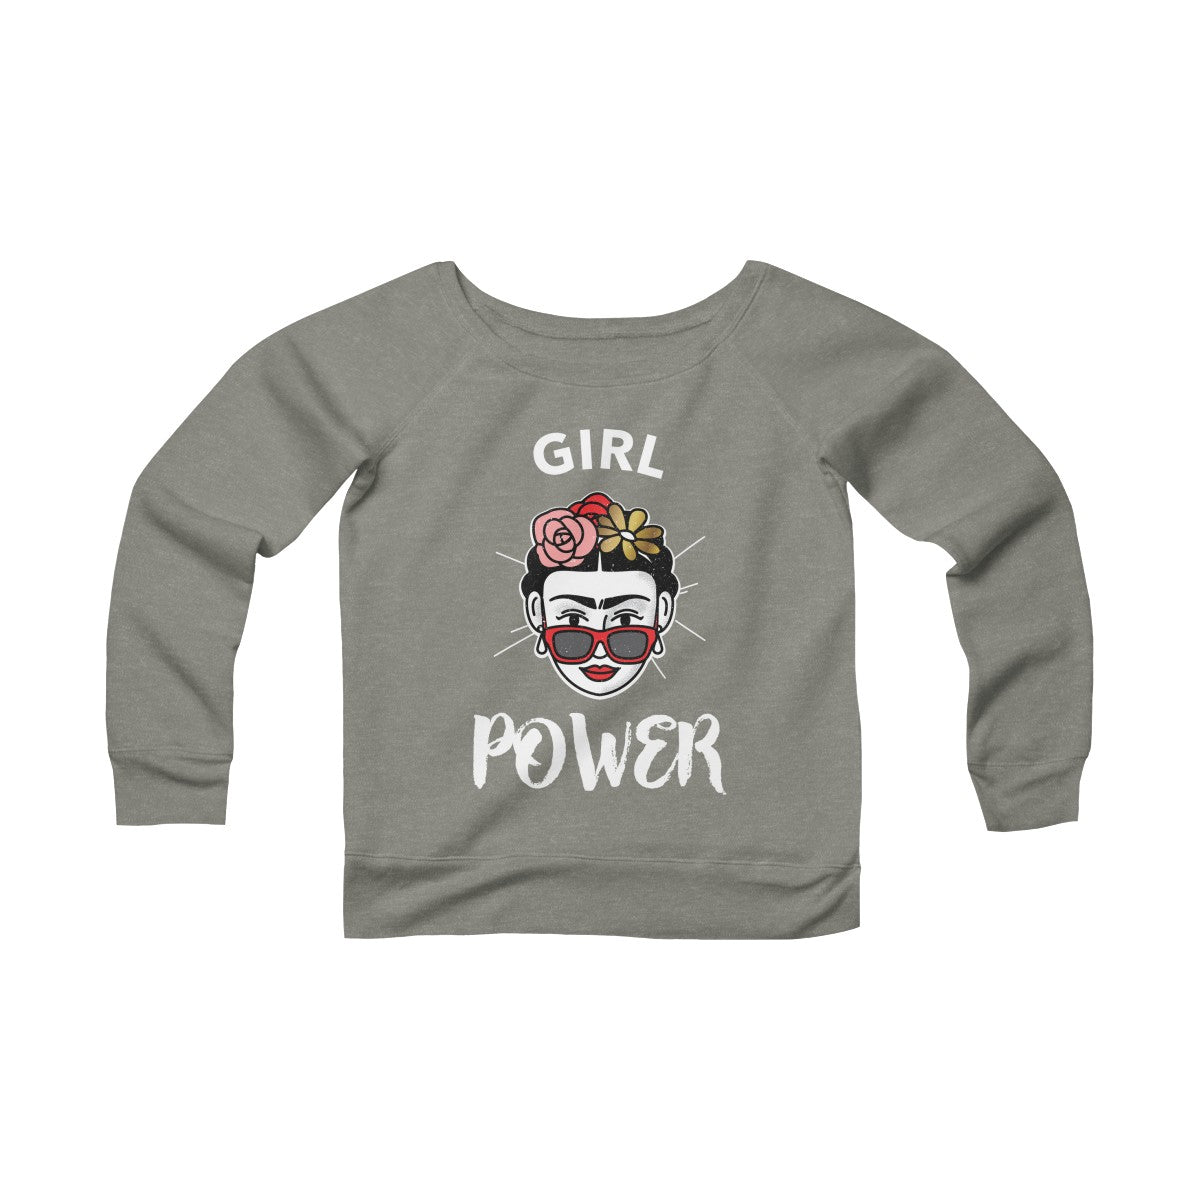 Girl Power Women's Sponge Fleece Wide Neck Sweatshirt - DaVatka Fashion